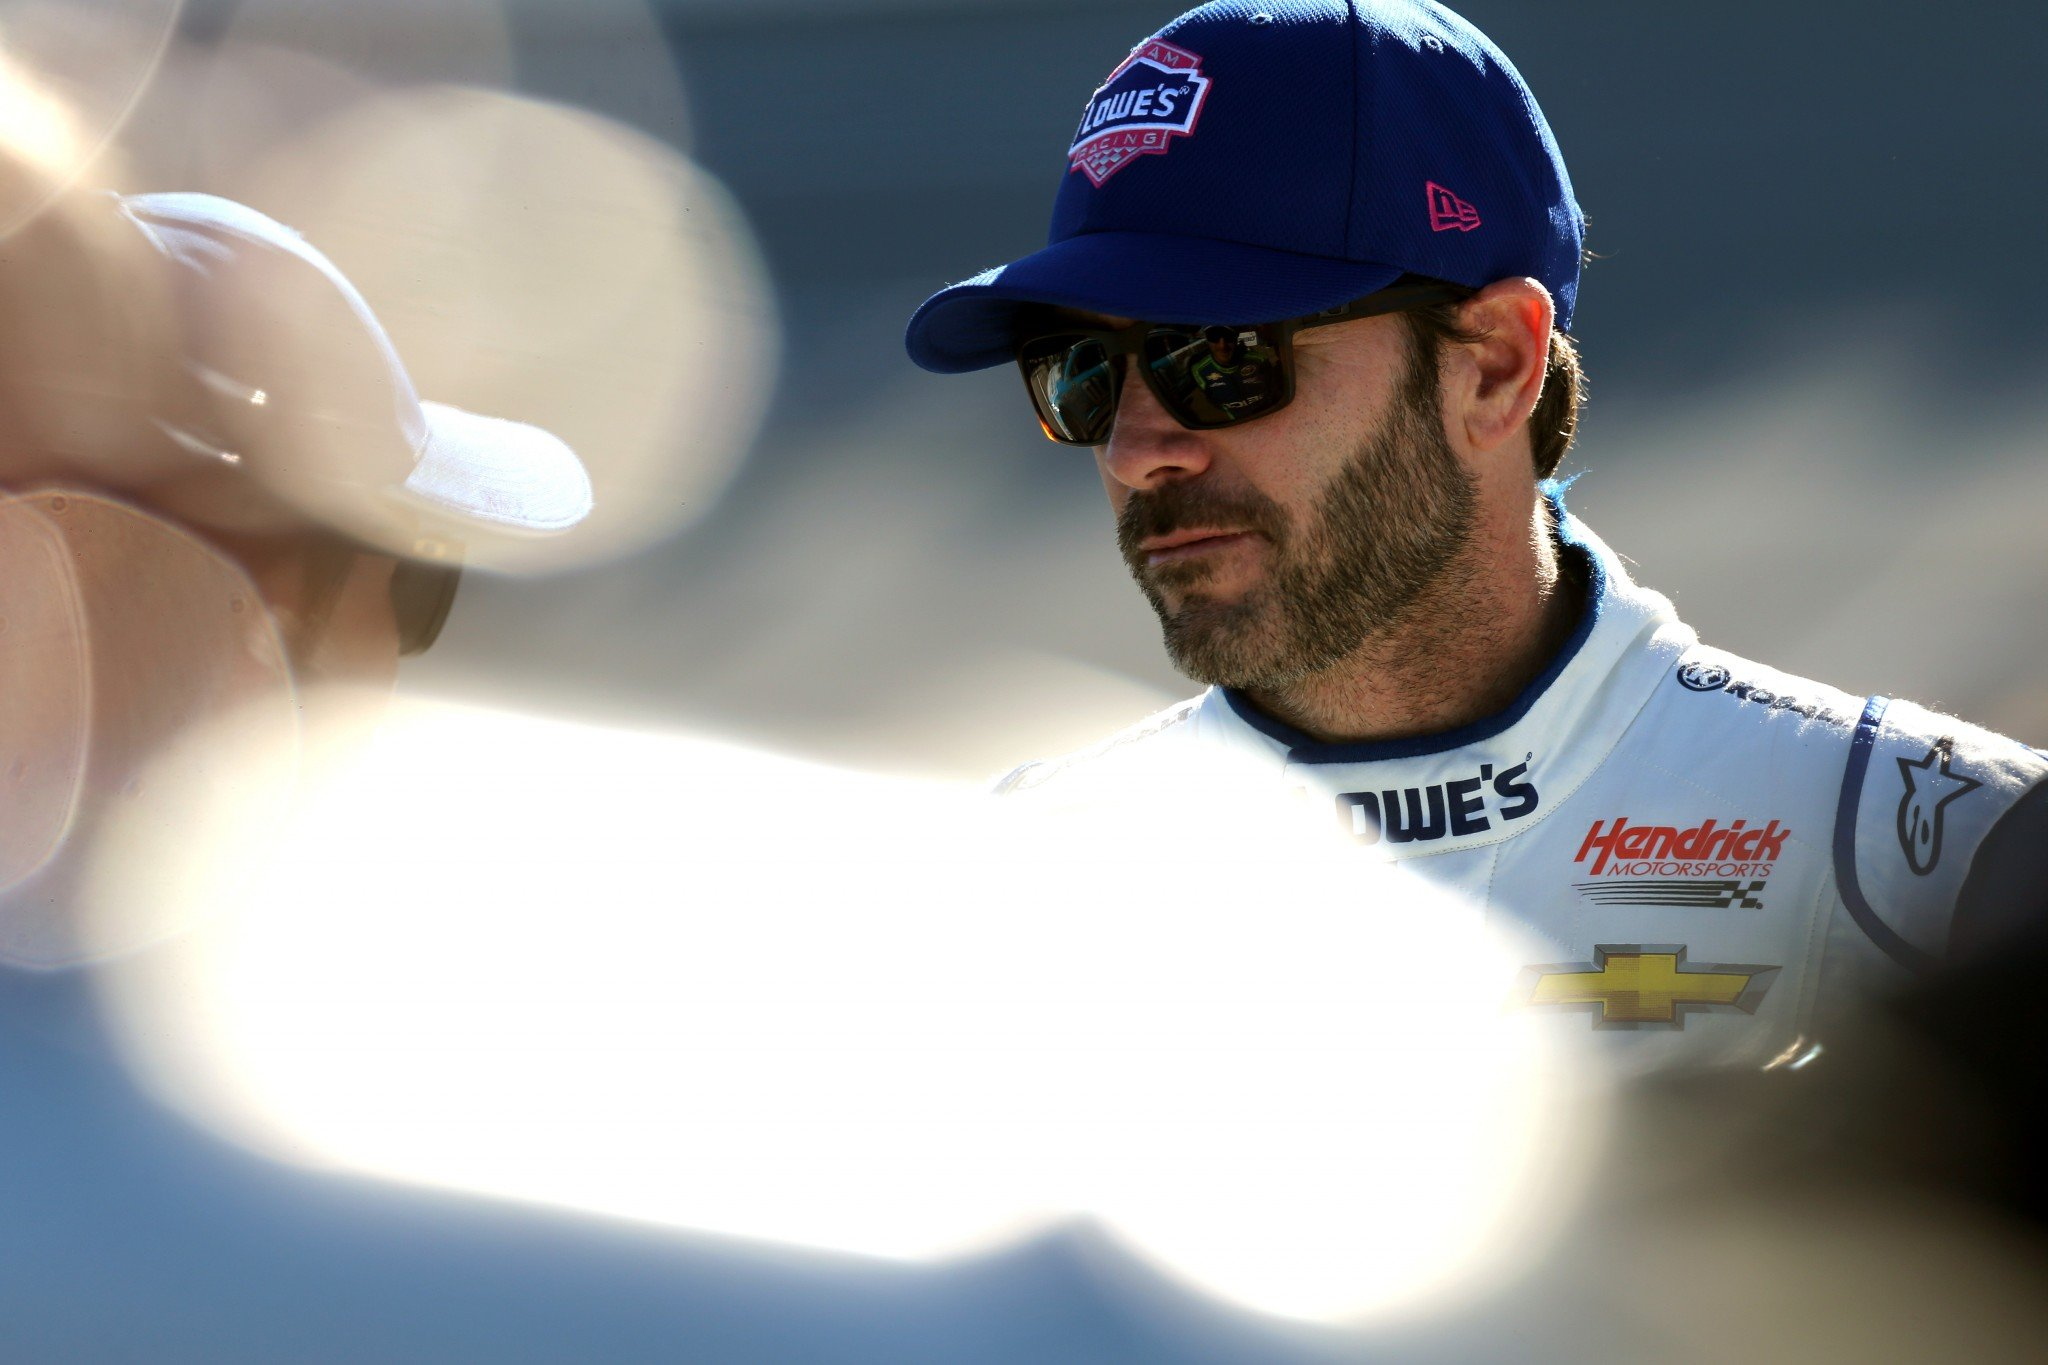 Jimmie Johnson missed out on the third round of the Chase in 2014 and 2015. (Getty)